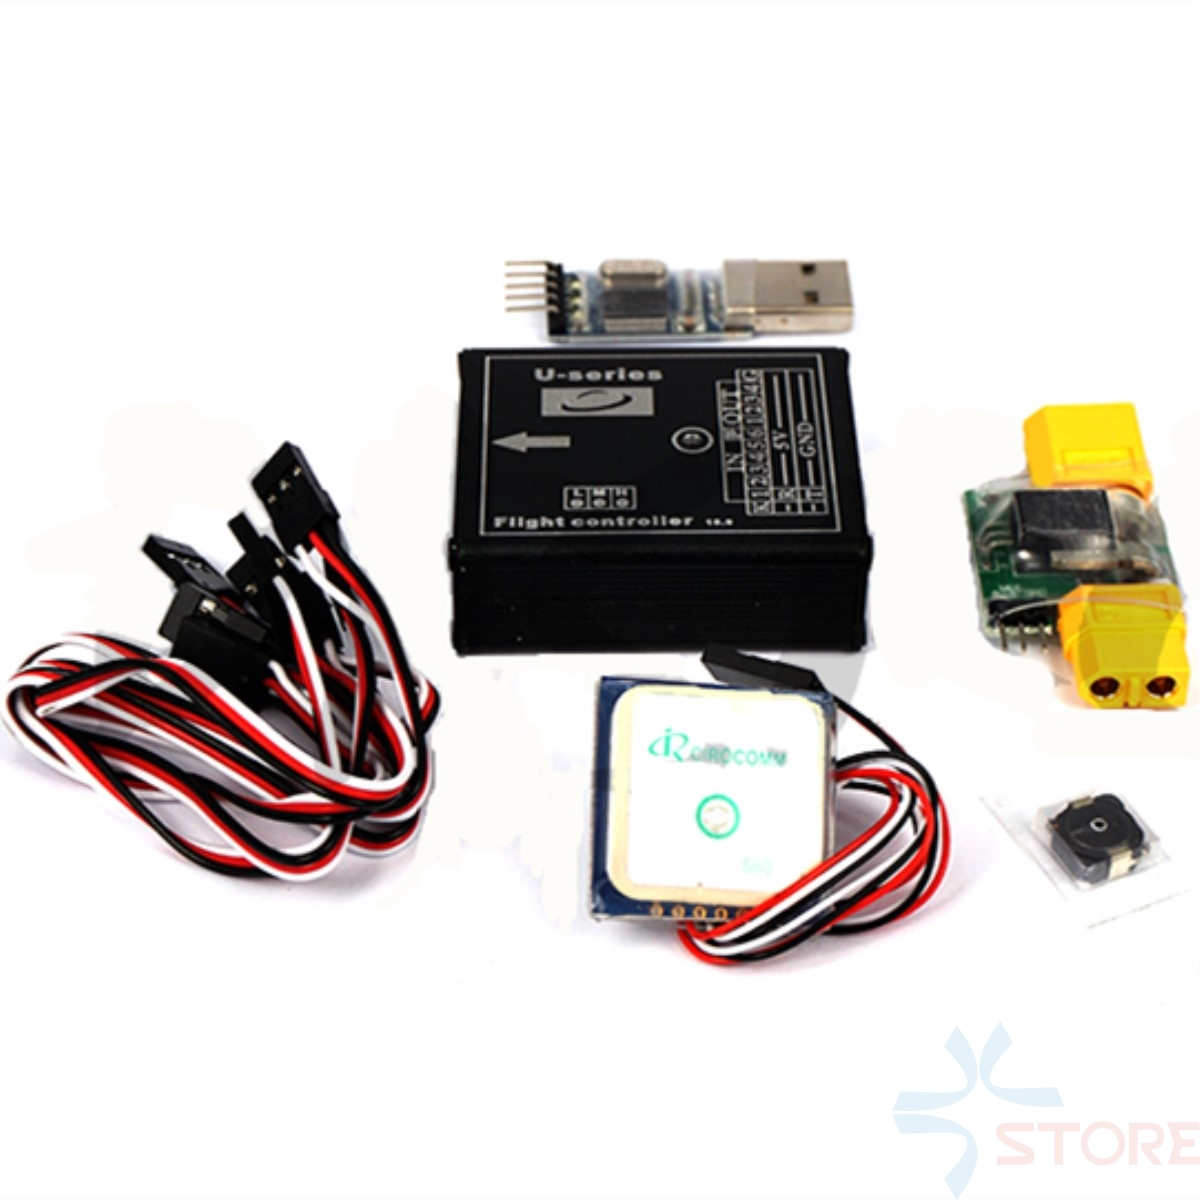 U22 Flight Control System Autopilot Mainboard + GPS + Current Meter + USB Upgrade Cable + Inductance + 6 Pairs Servo Cables rctimer atlas flight control system included gps